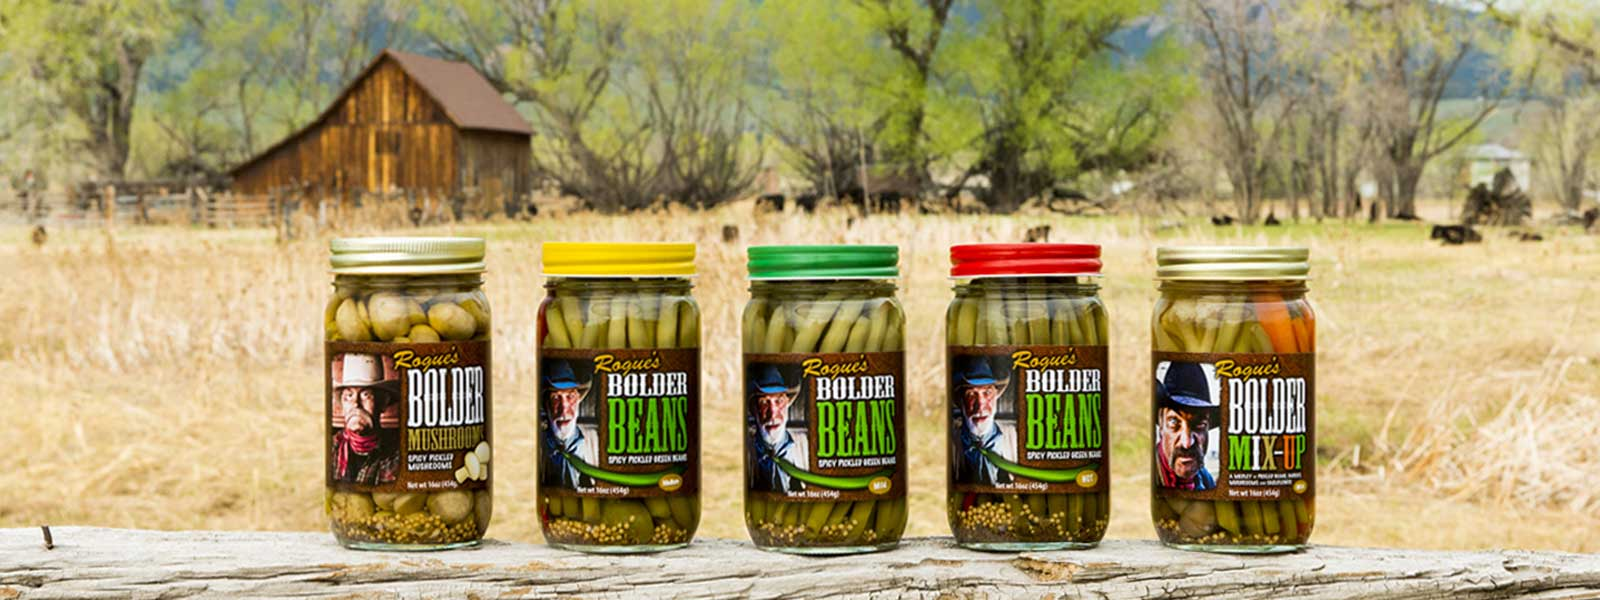 Photo of Bolder Beans product family on a split fence rail